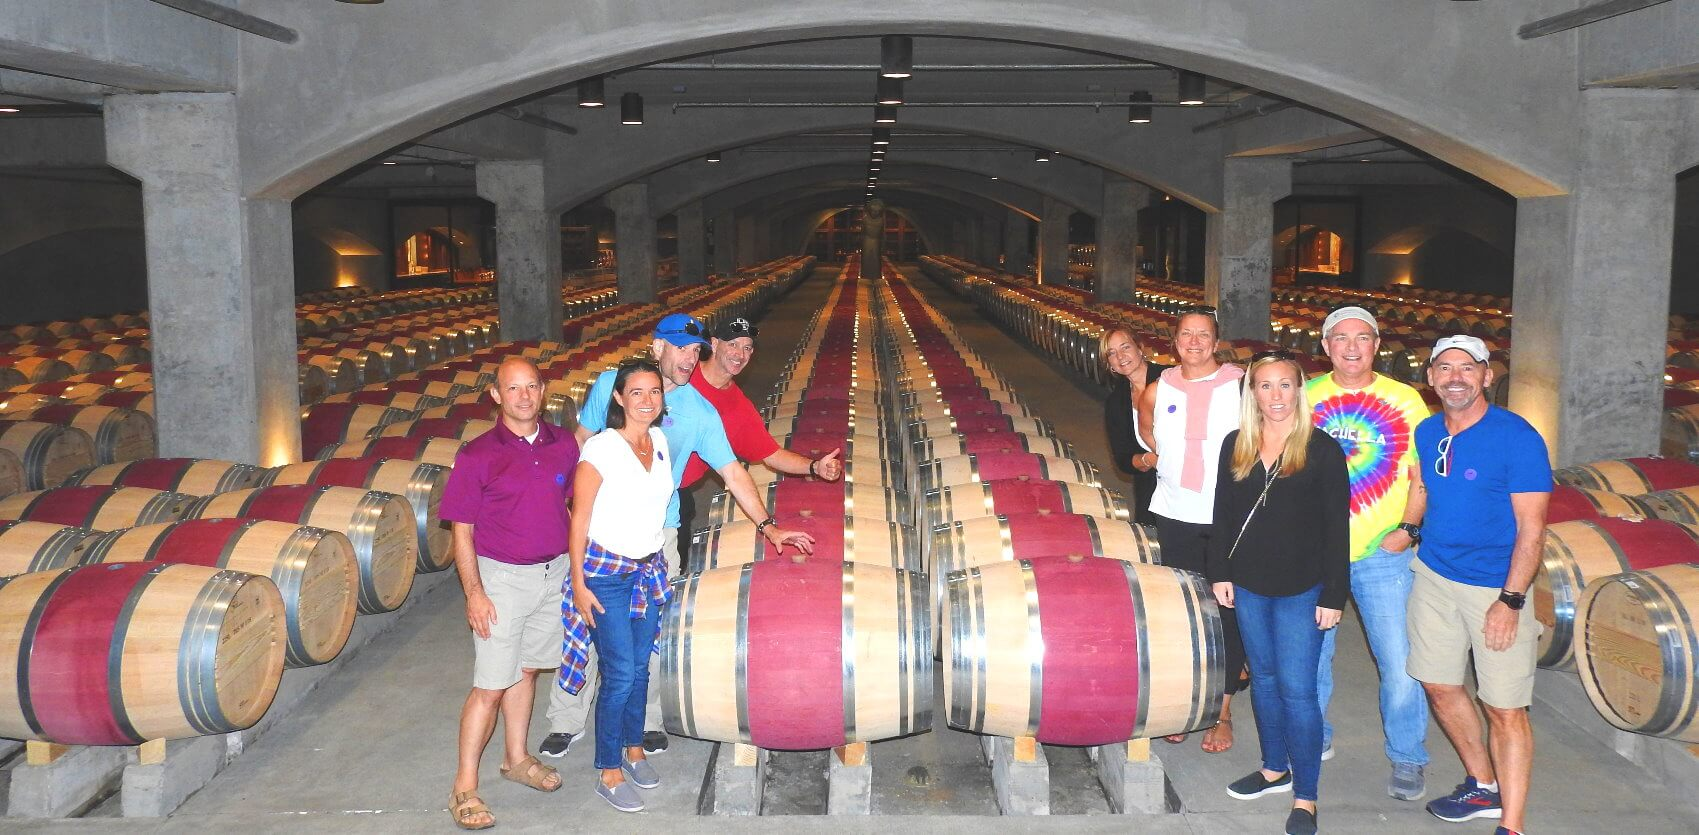 napa-valley-wine-barrel-tasting-cave-tour-sonoma-wine-country